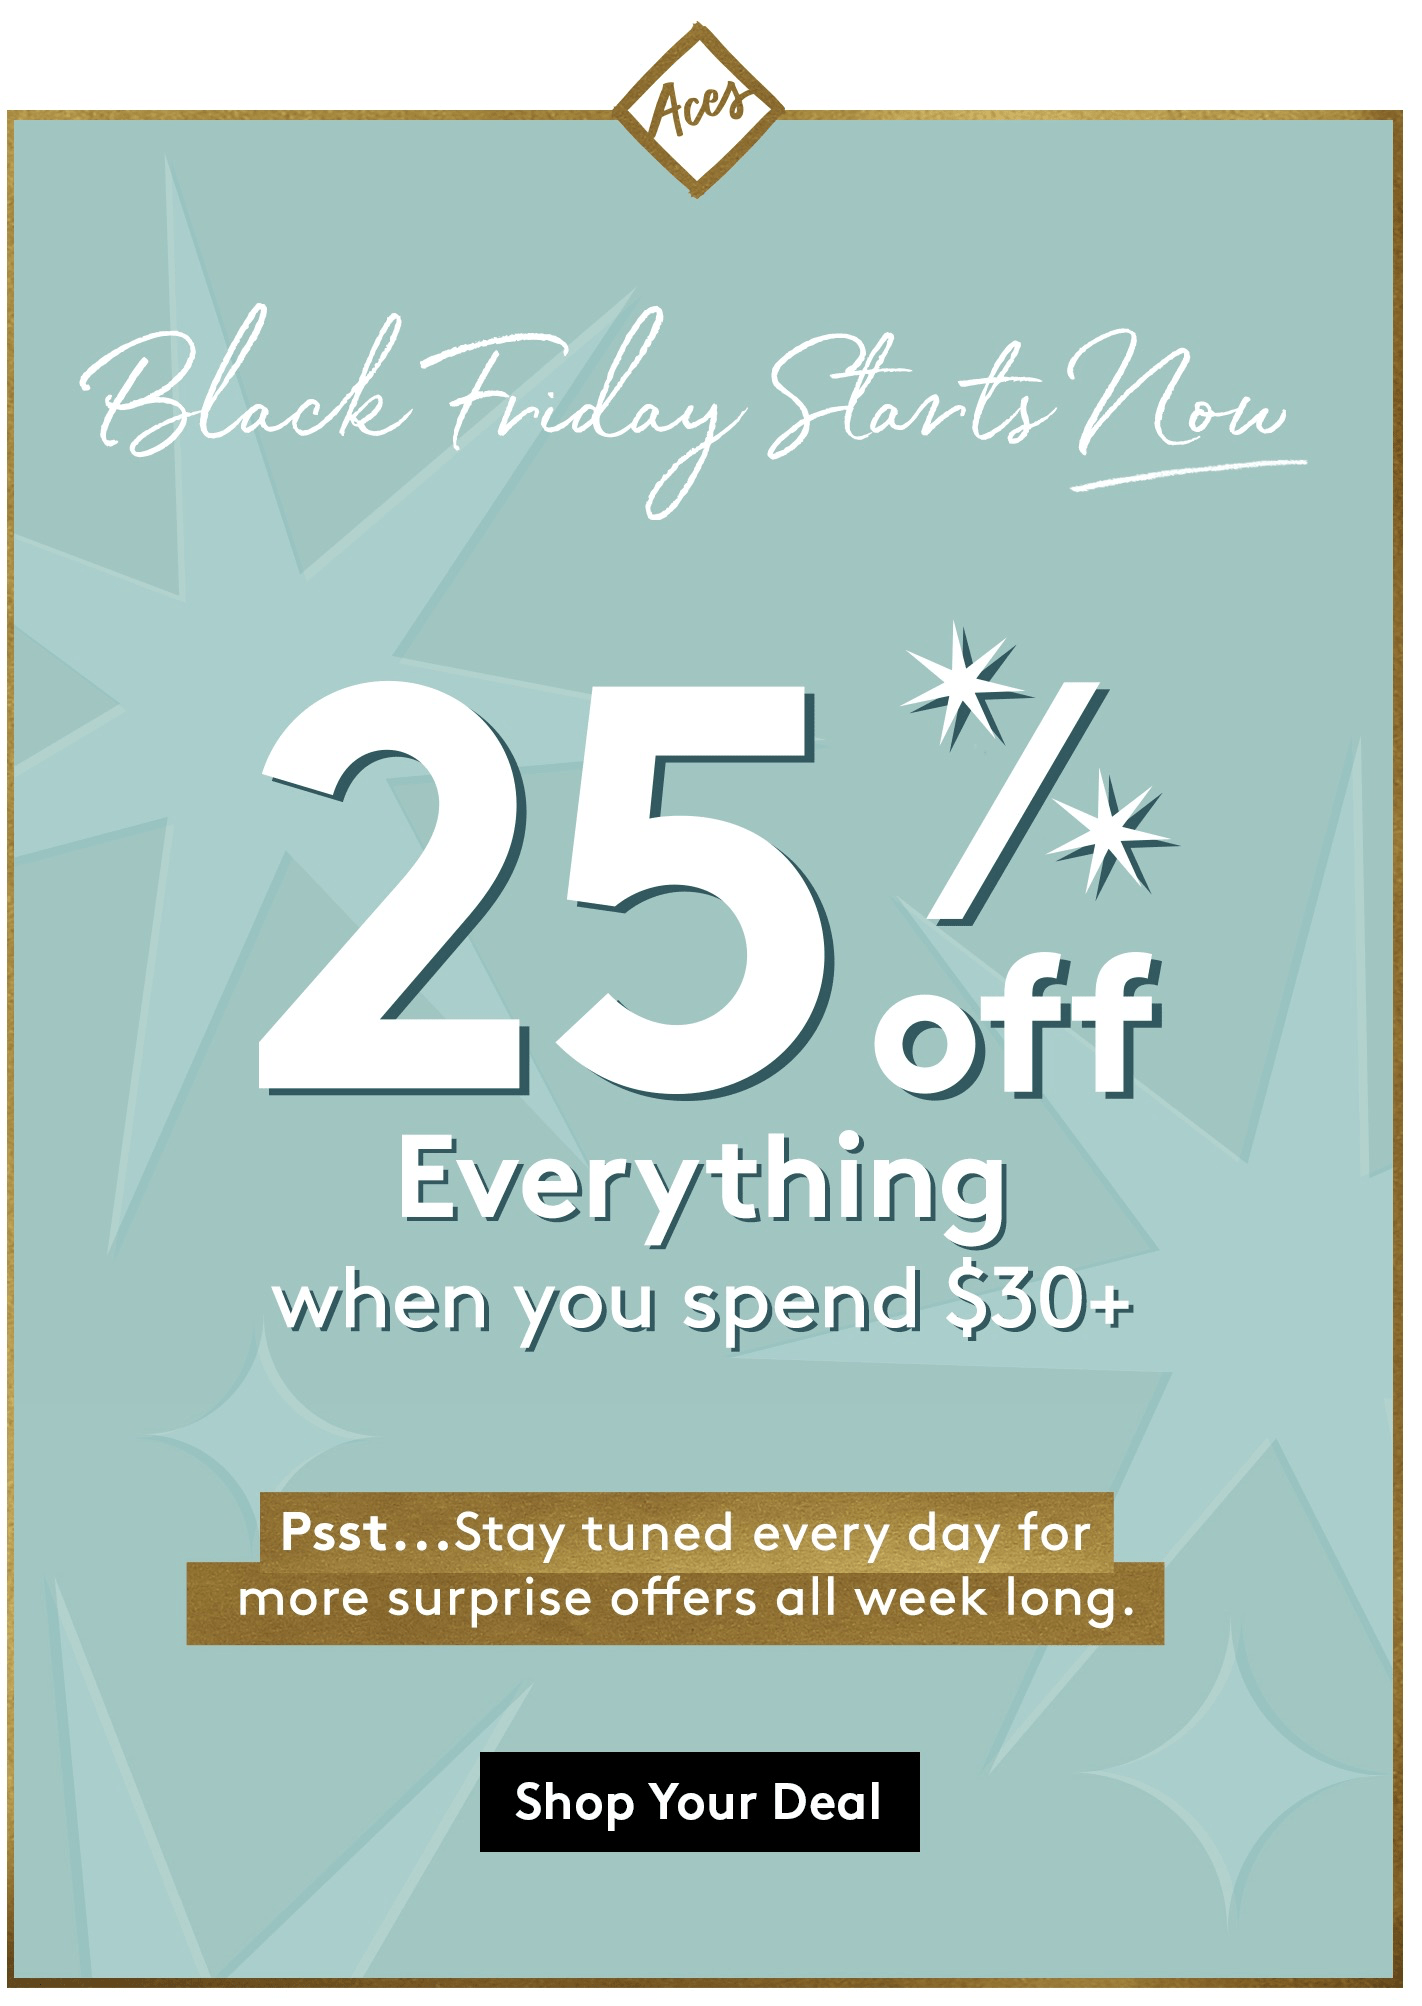 BirchboxMan Black Friday 2018 Deal: Aces Save 25% Off Now!